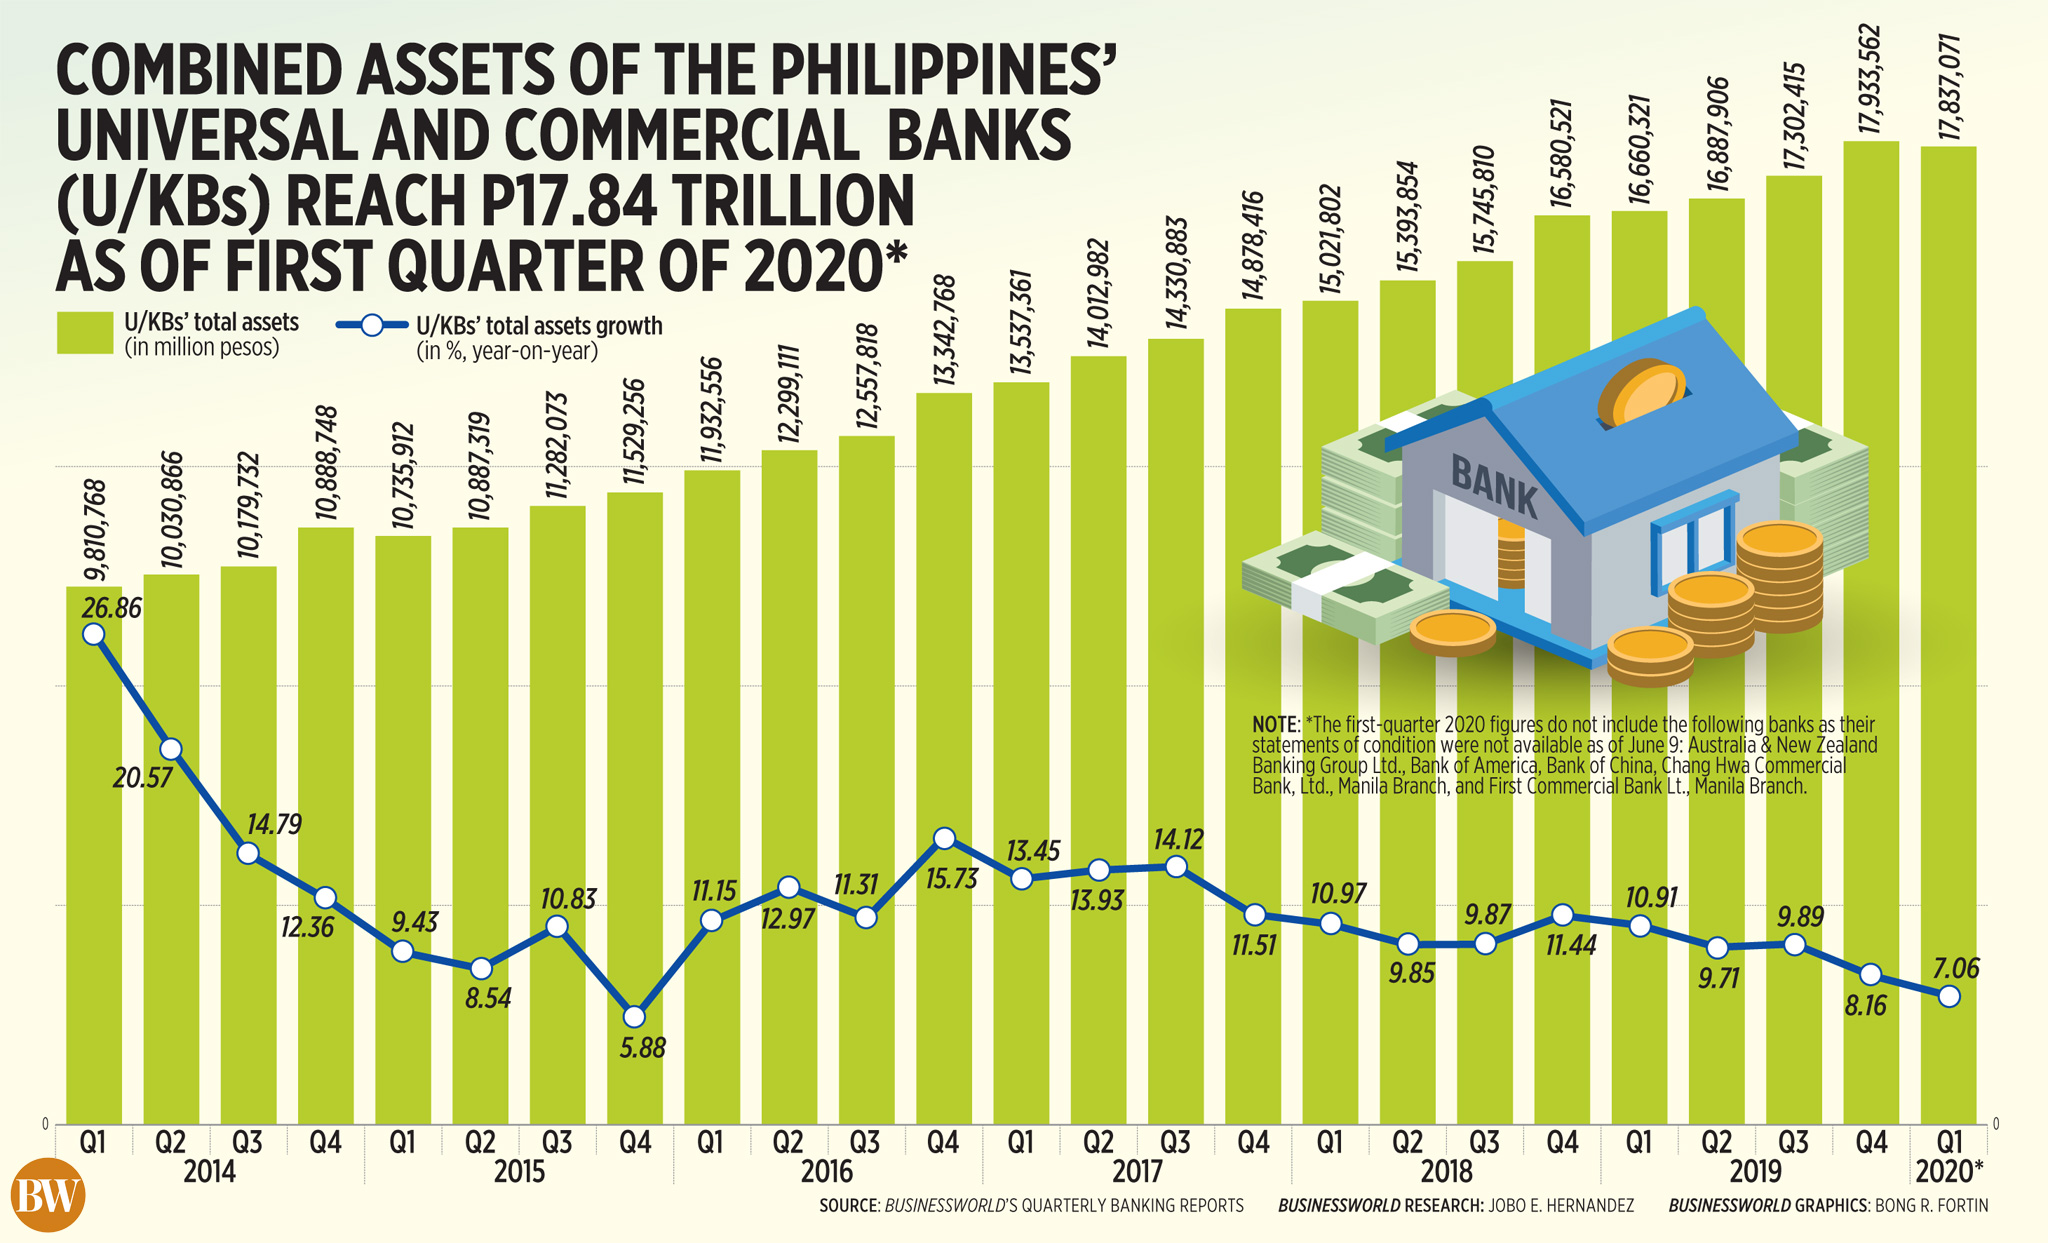 Combined assets of the Philippines' universal and commercial banks (U/KBs) reach P17.84 trillion as of first quarter of 2020*